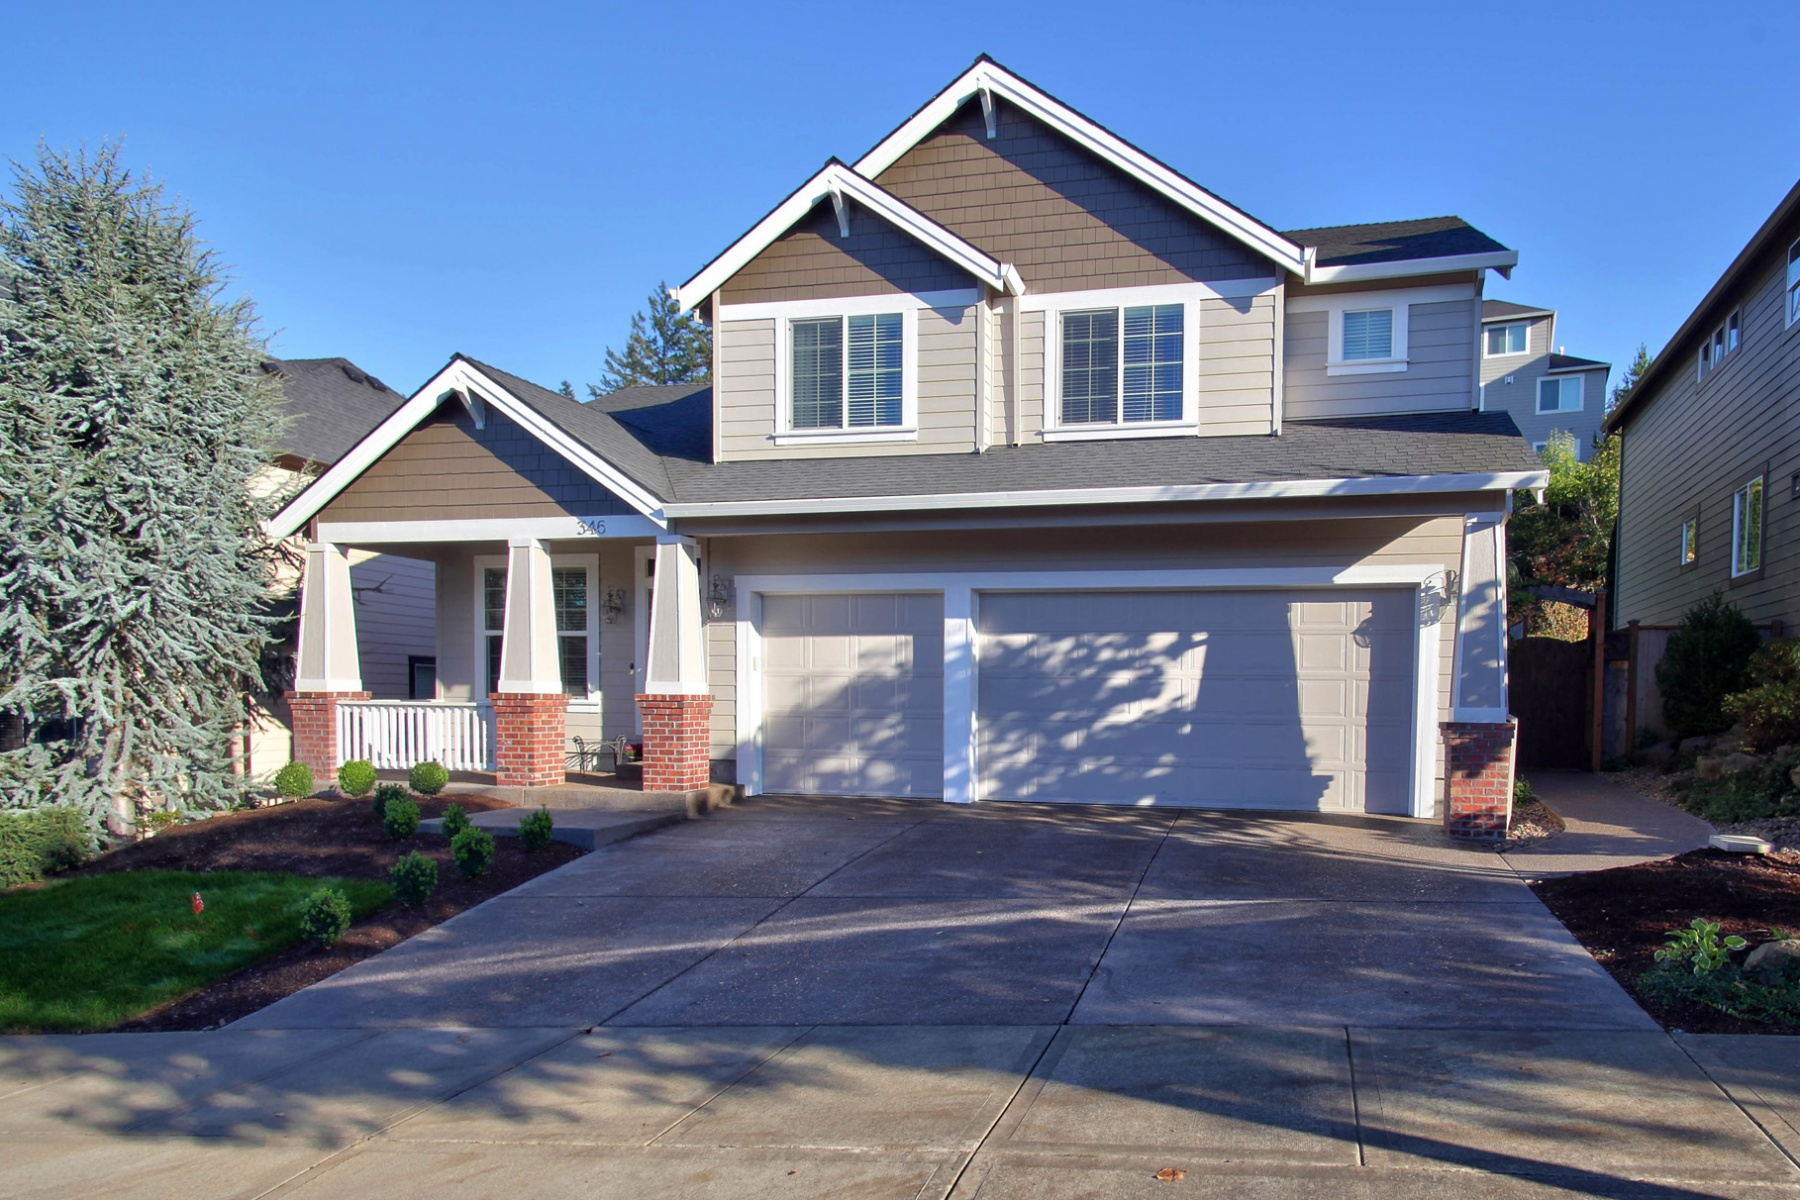 346 the Greens Ave, Newberg, OR 97132